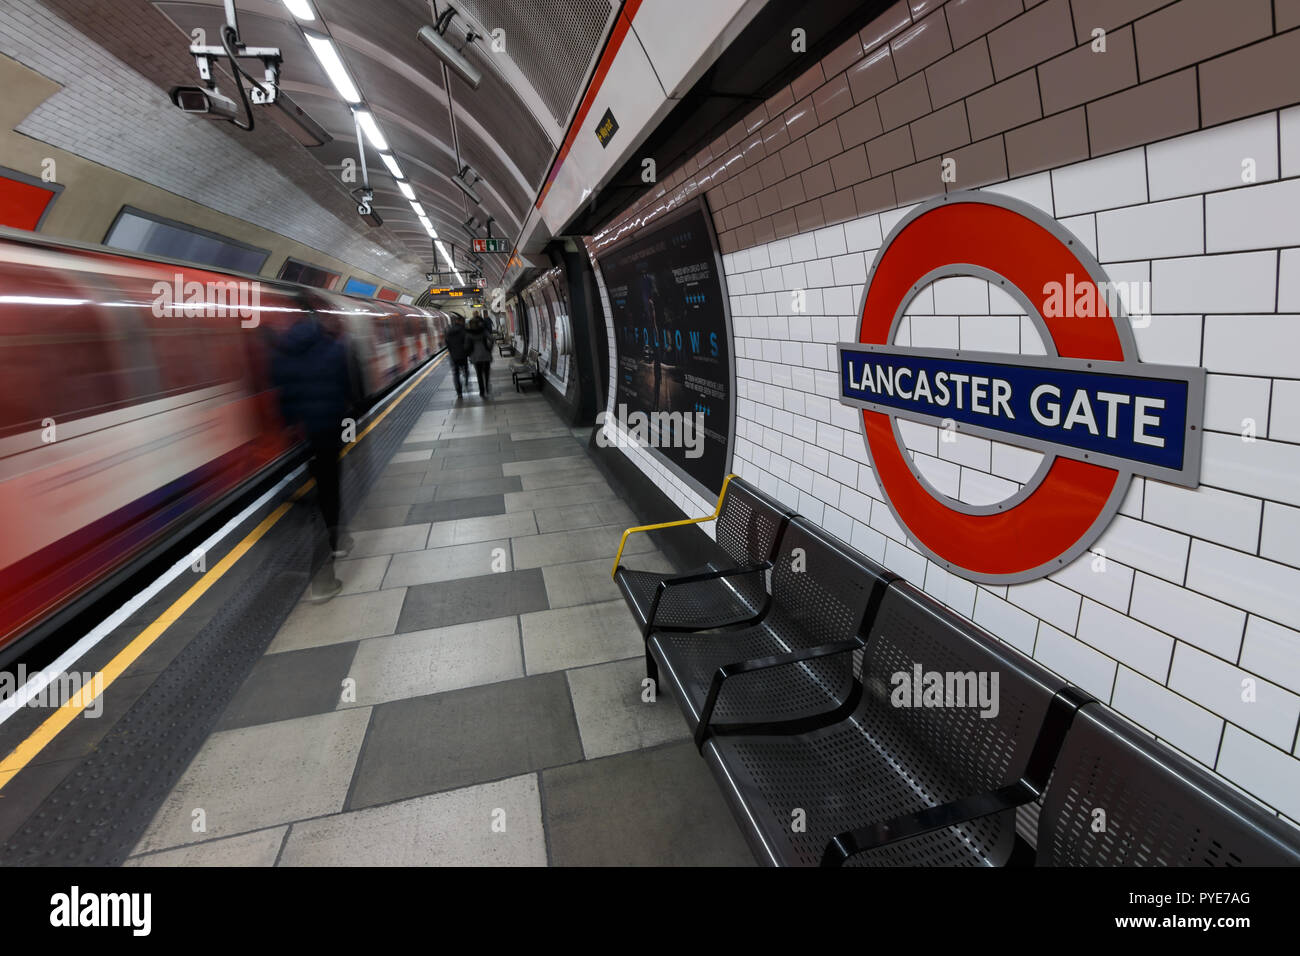 London Underground sign with moving train and people at Lancaster Gate station  LONDON - MARCH 07, 2015: London Underground sign with moving train and Stock Photo